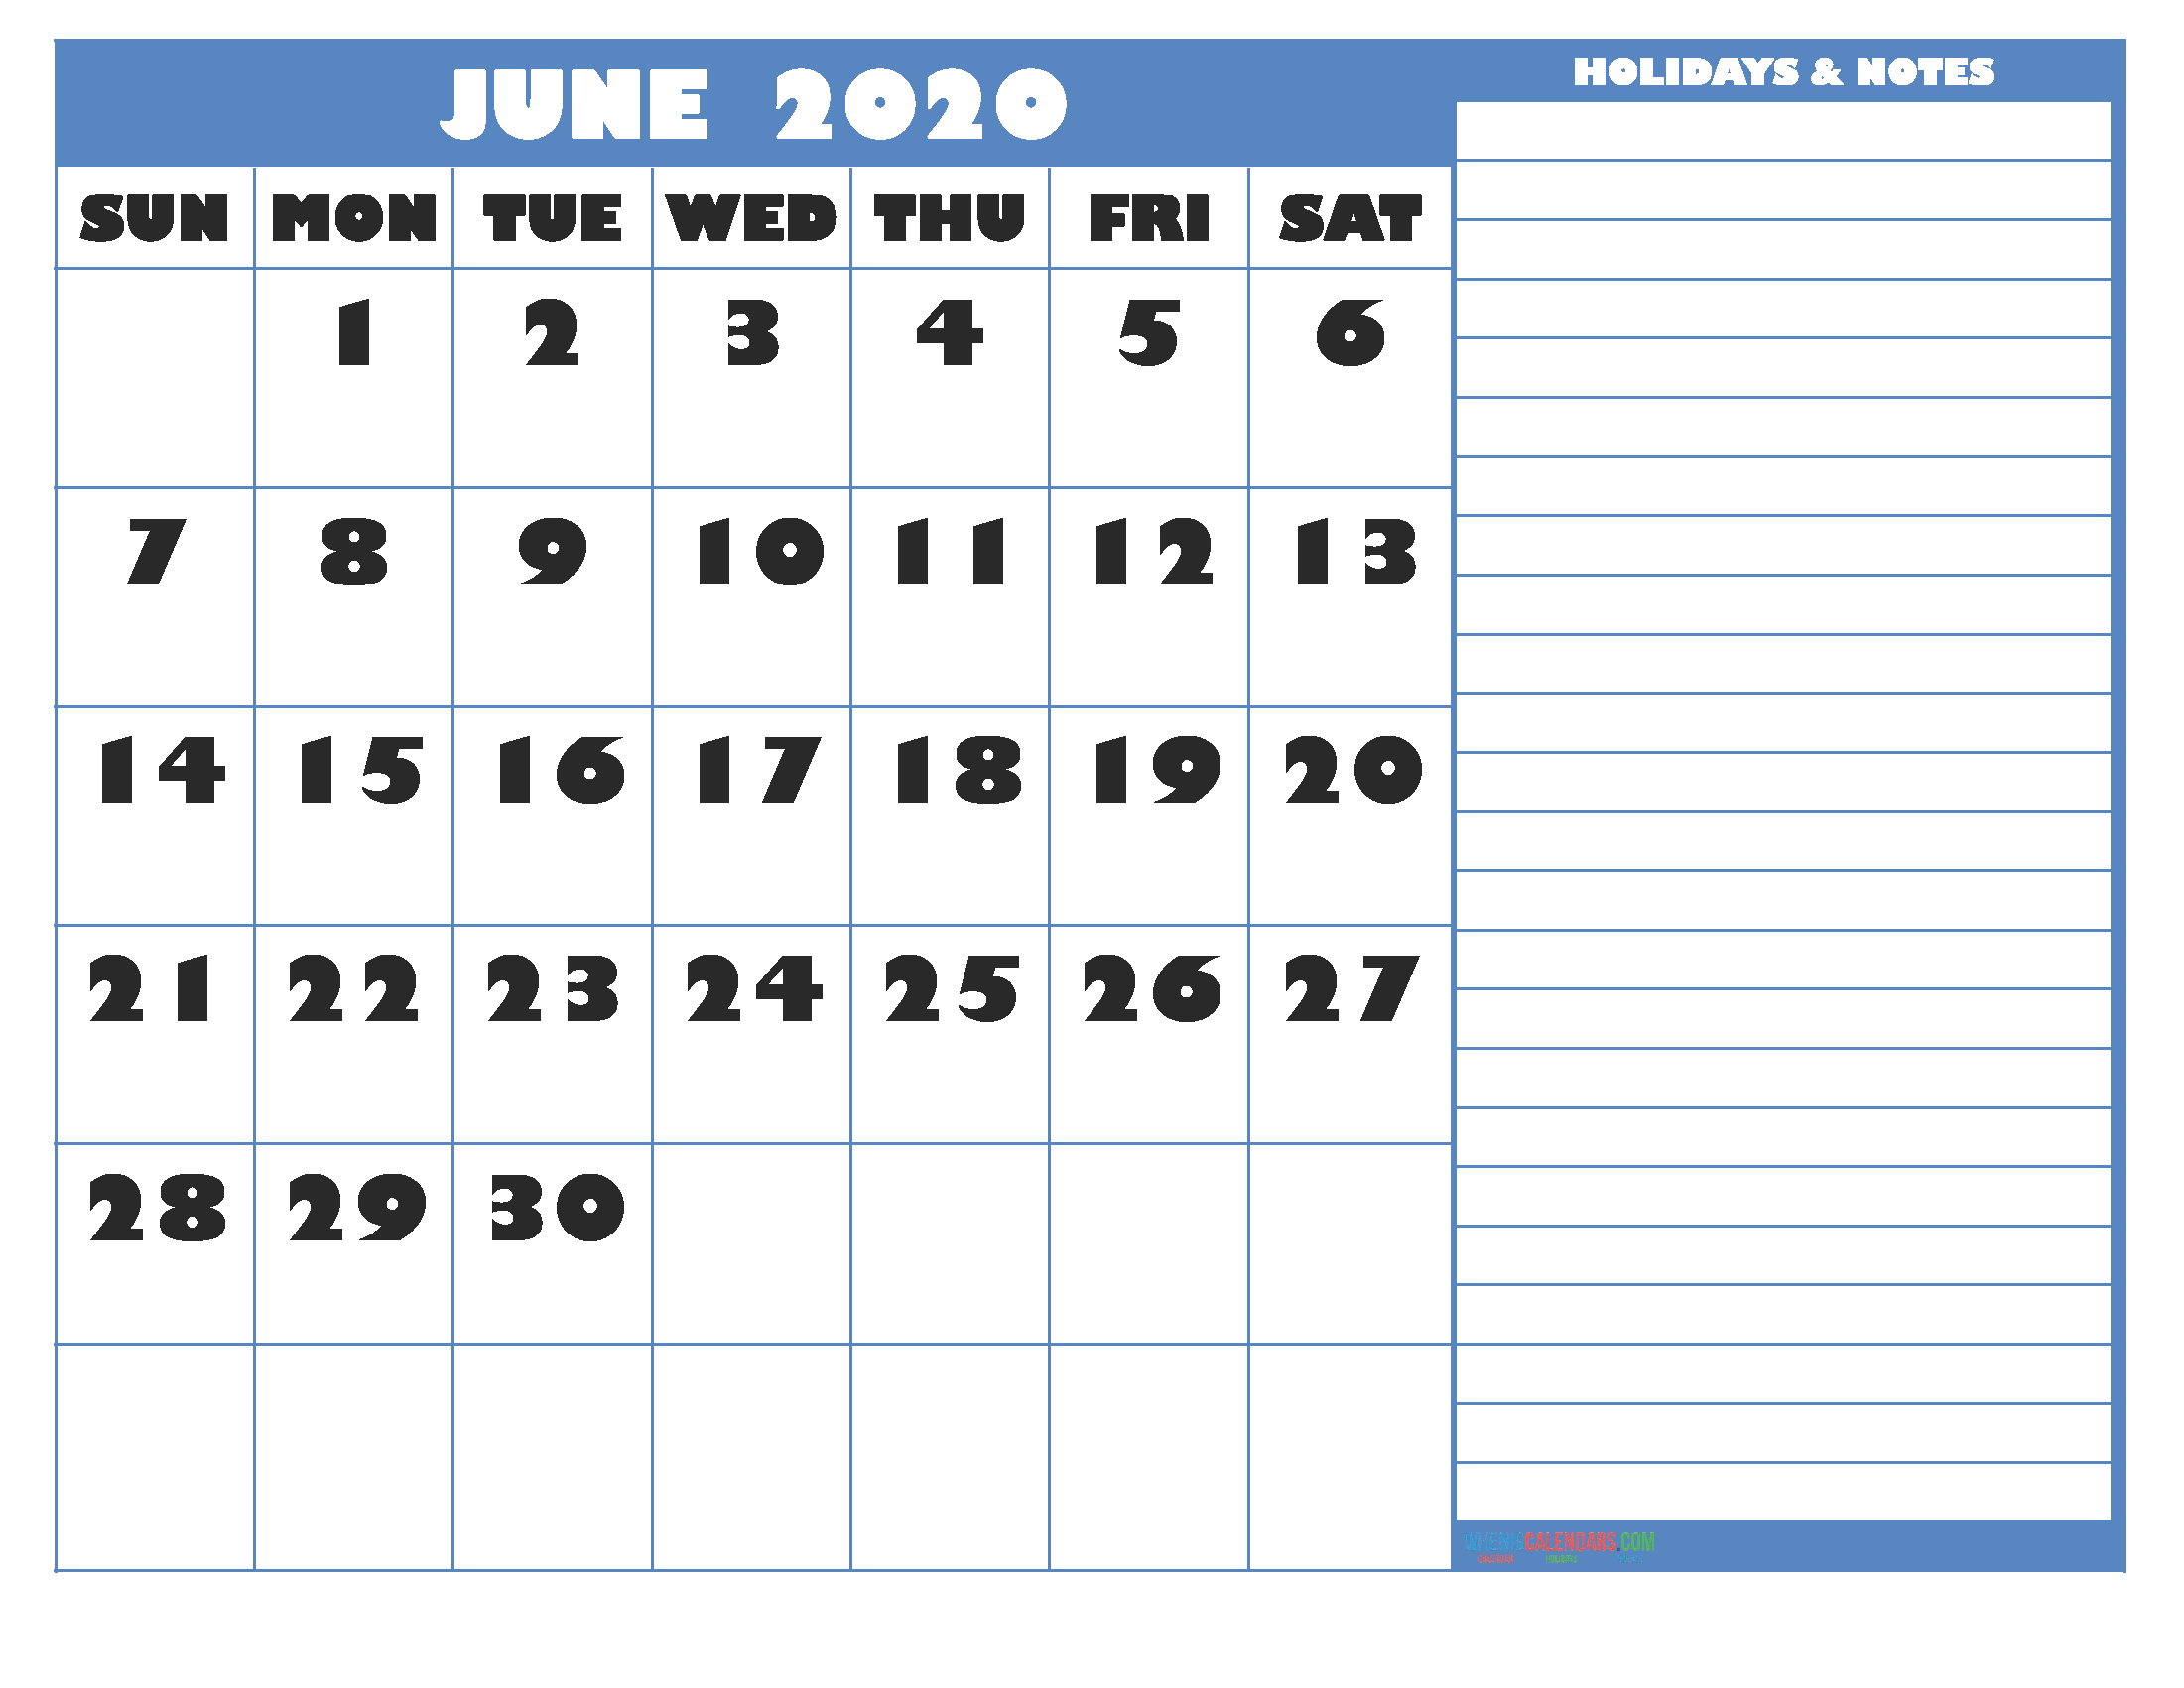 June 2020 Calendar with Holidays Free Printable by Word